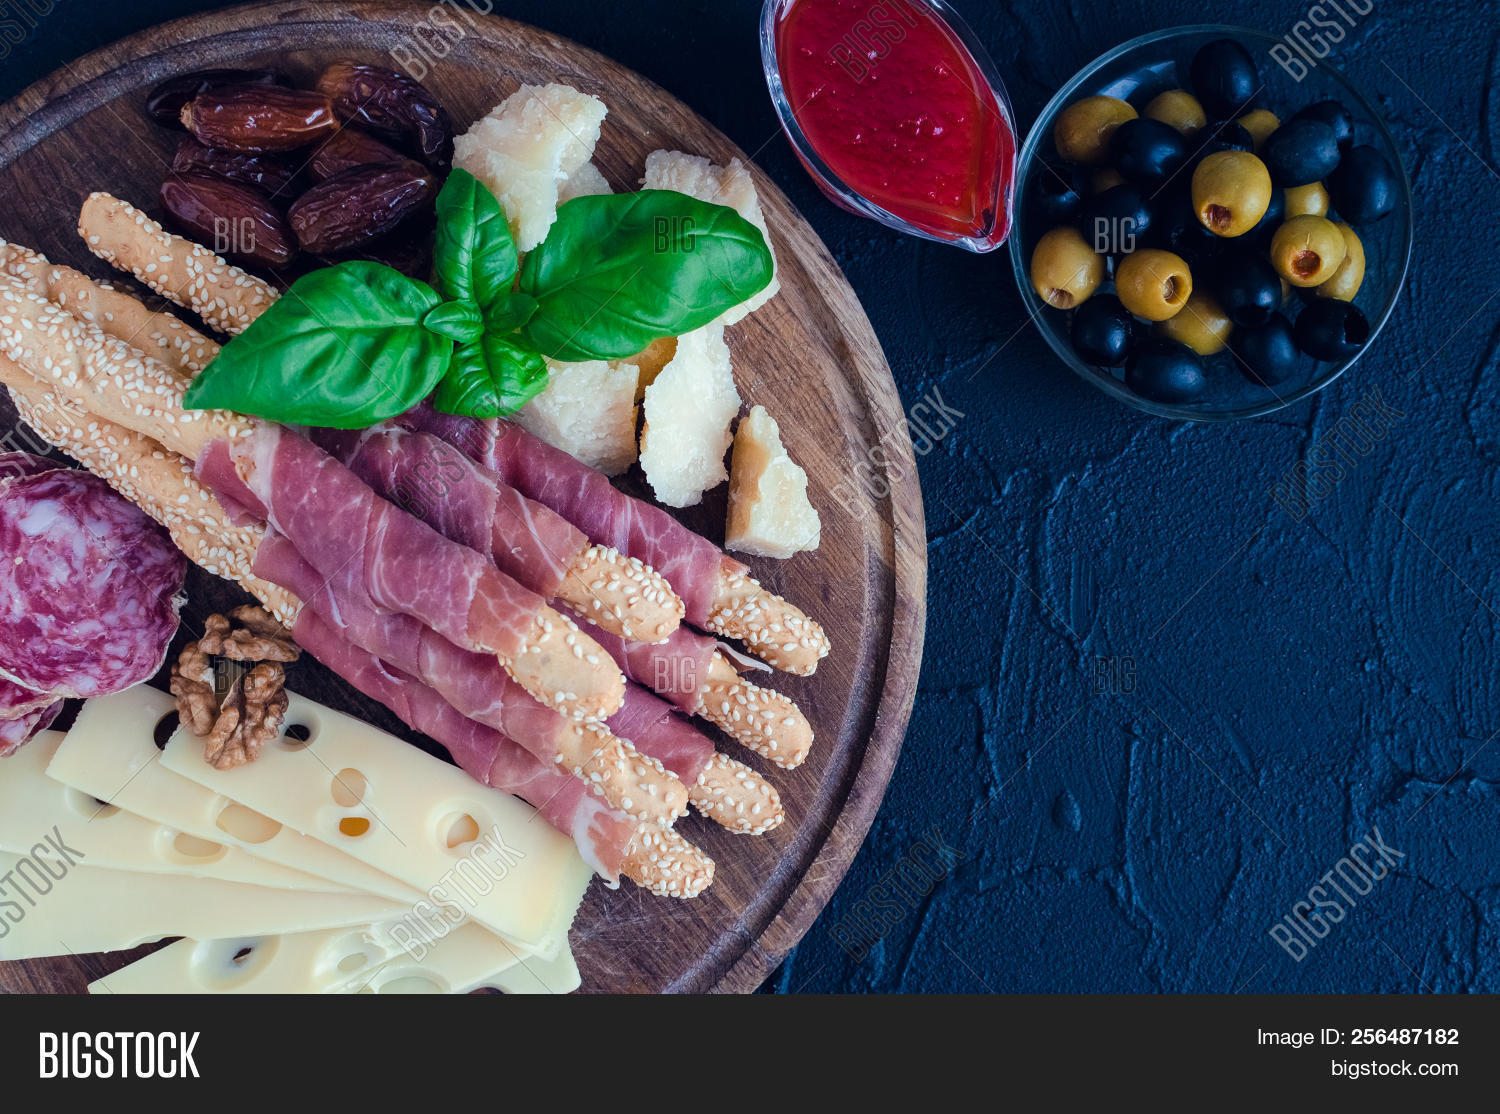 Mediterrane Küche An Bord Wooden Board Full Image Photo Free Trial Bigstock